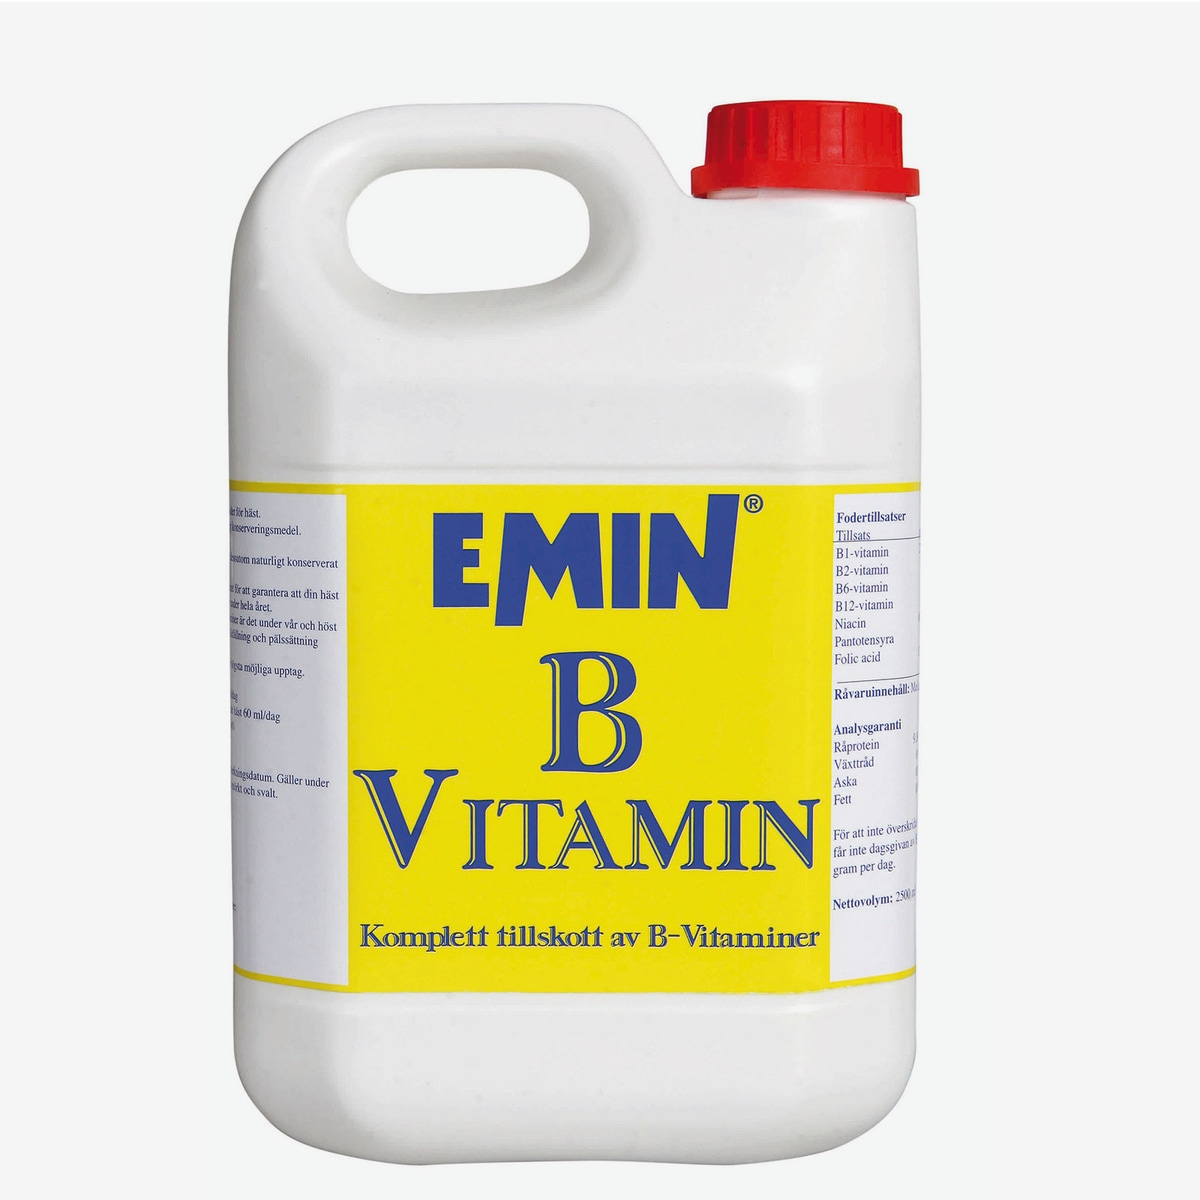 Emin B-vitamin, 2500 ml